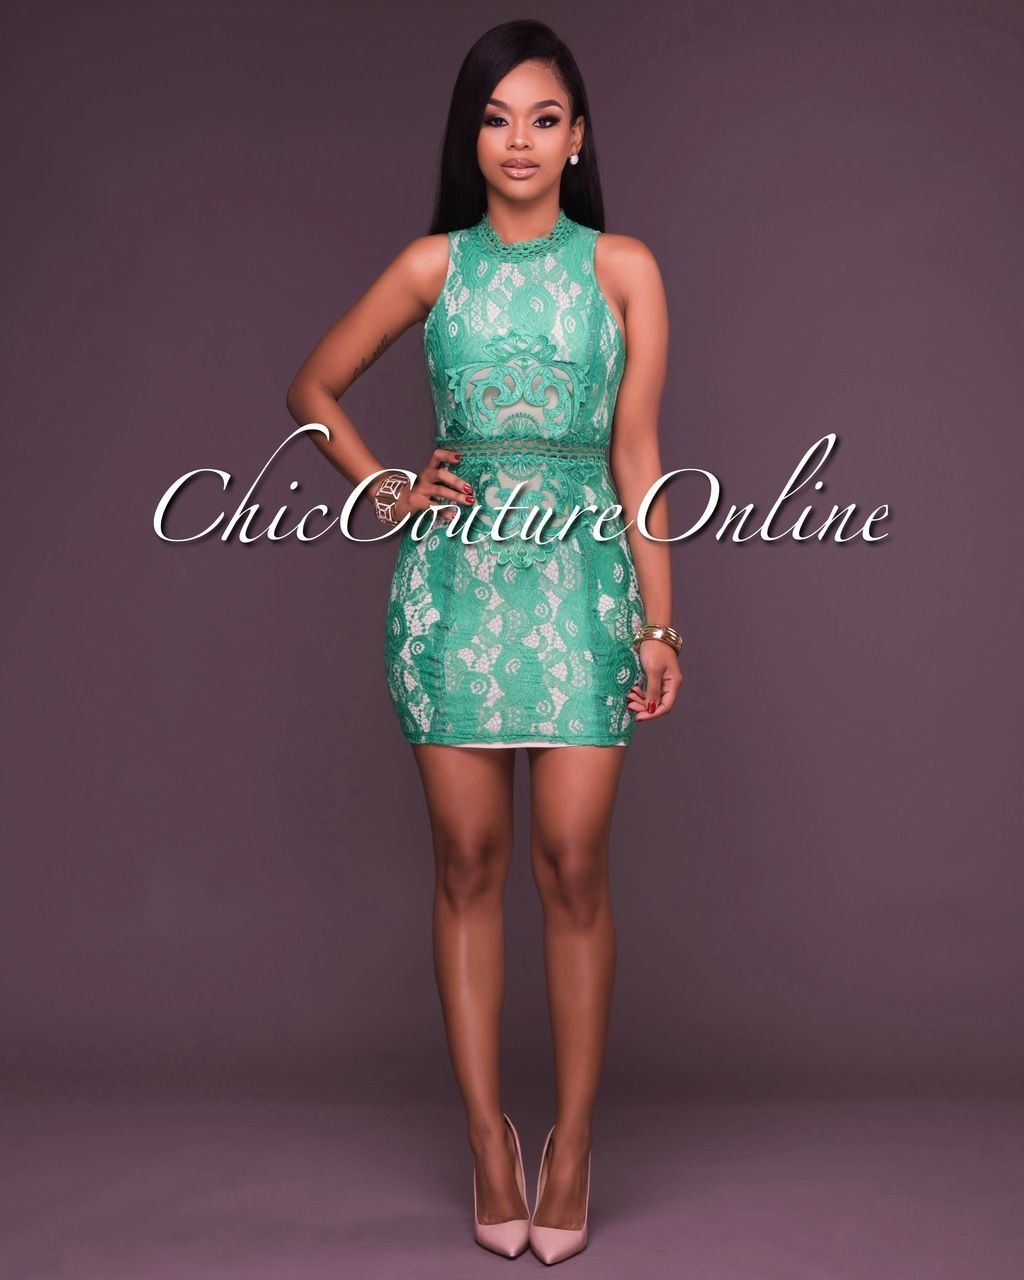 Green dress with lace overlay  Chic Couture Online  Maeva Lace Overlay Kelly Green Mock Neck Mini